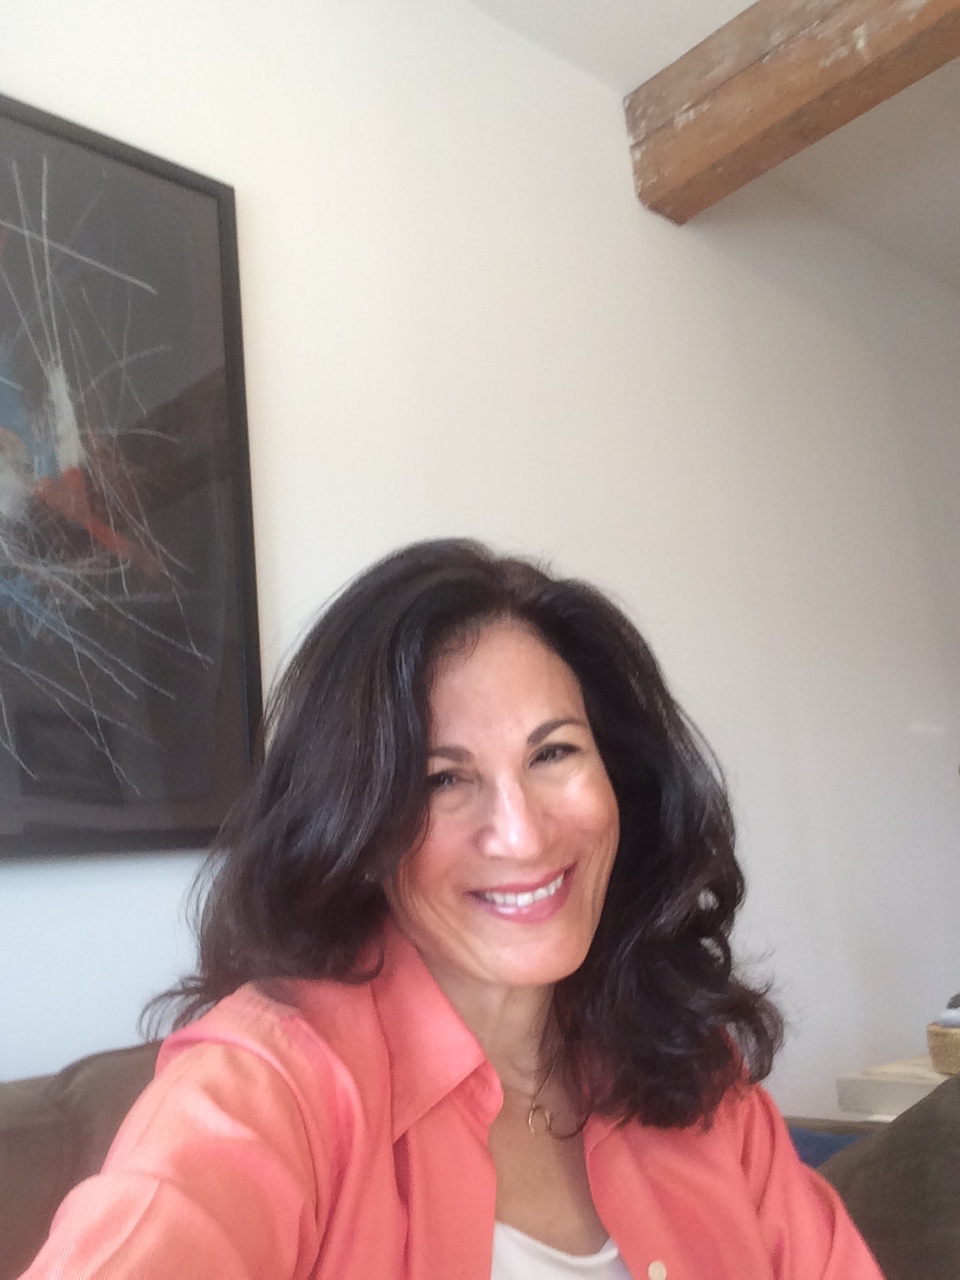 Jane Hammerslough, Marriage & Family Therapist New York City,